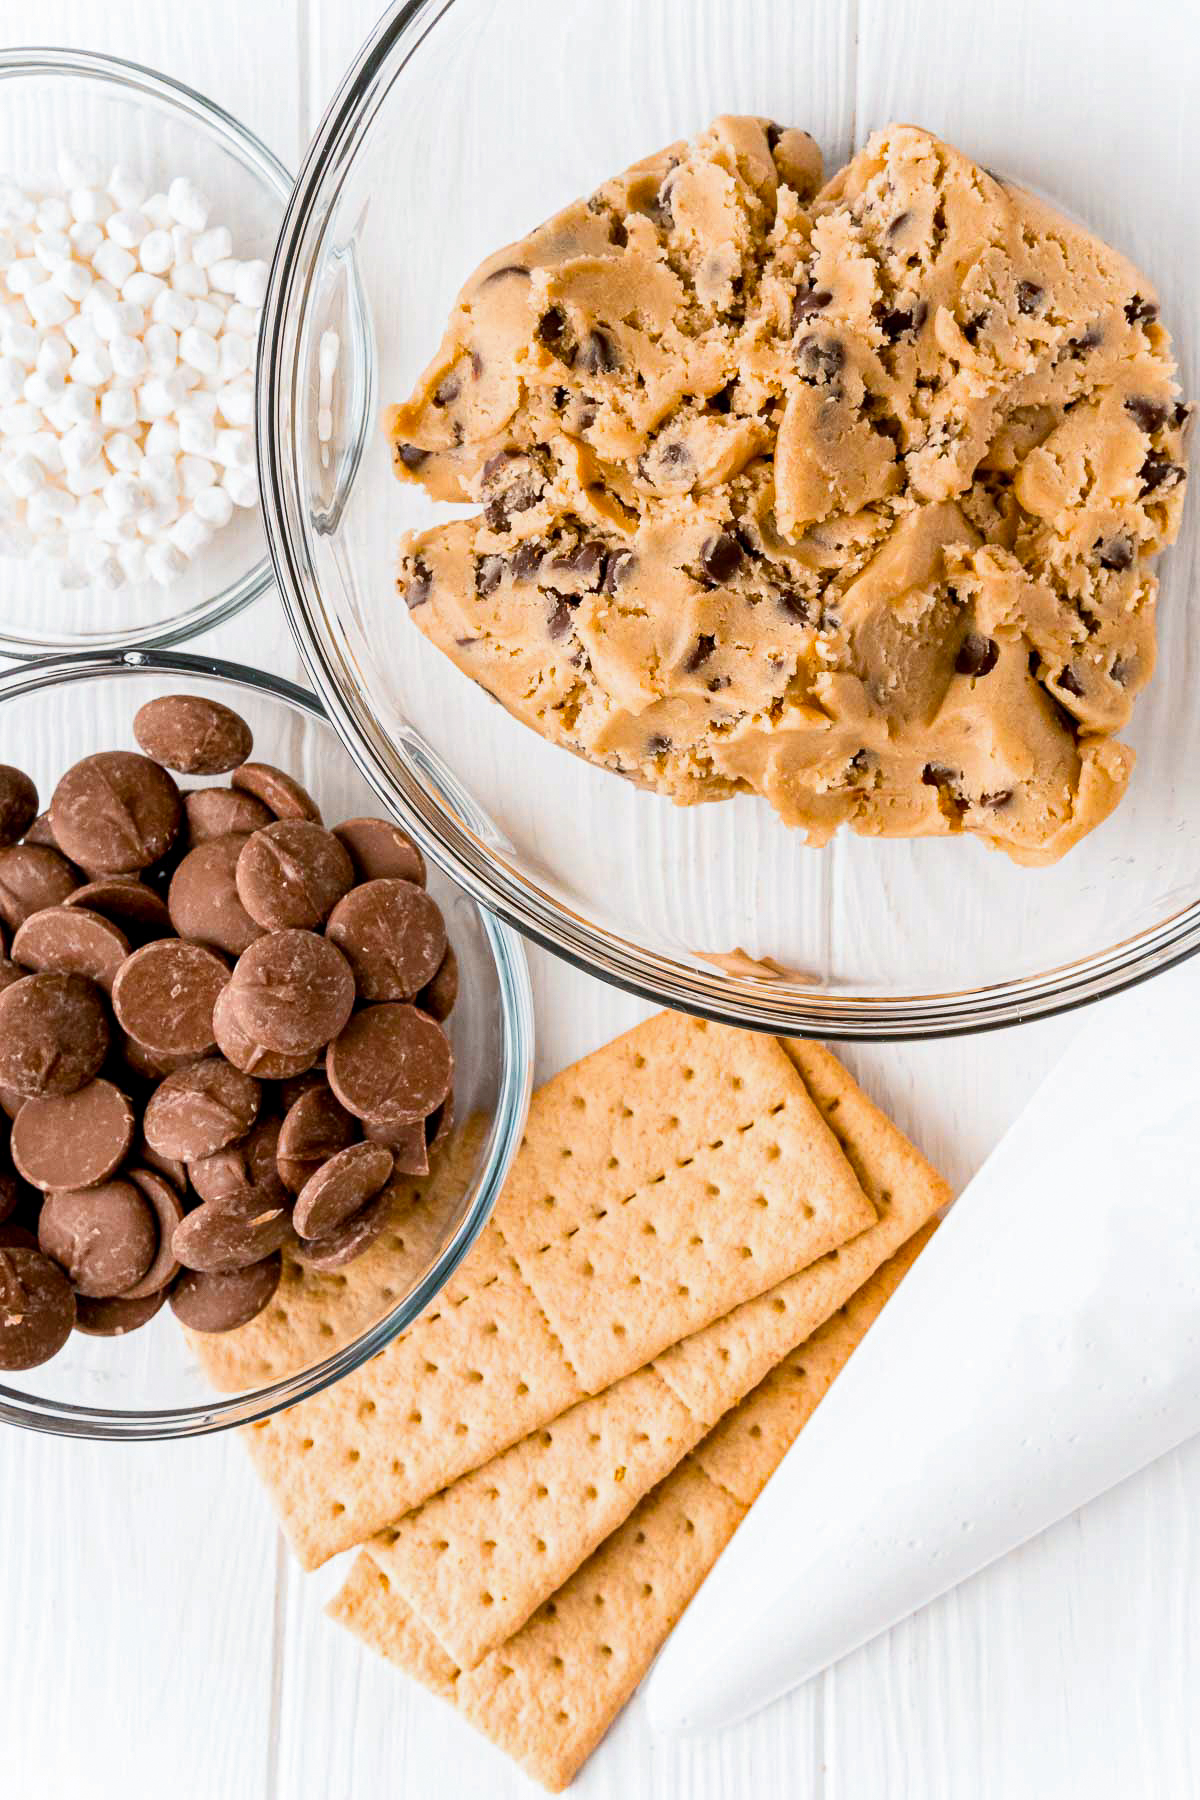 Ingredients needed to make a S'mores Cookie Recipe